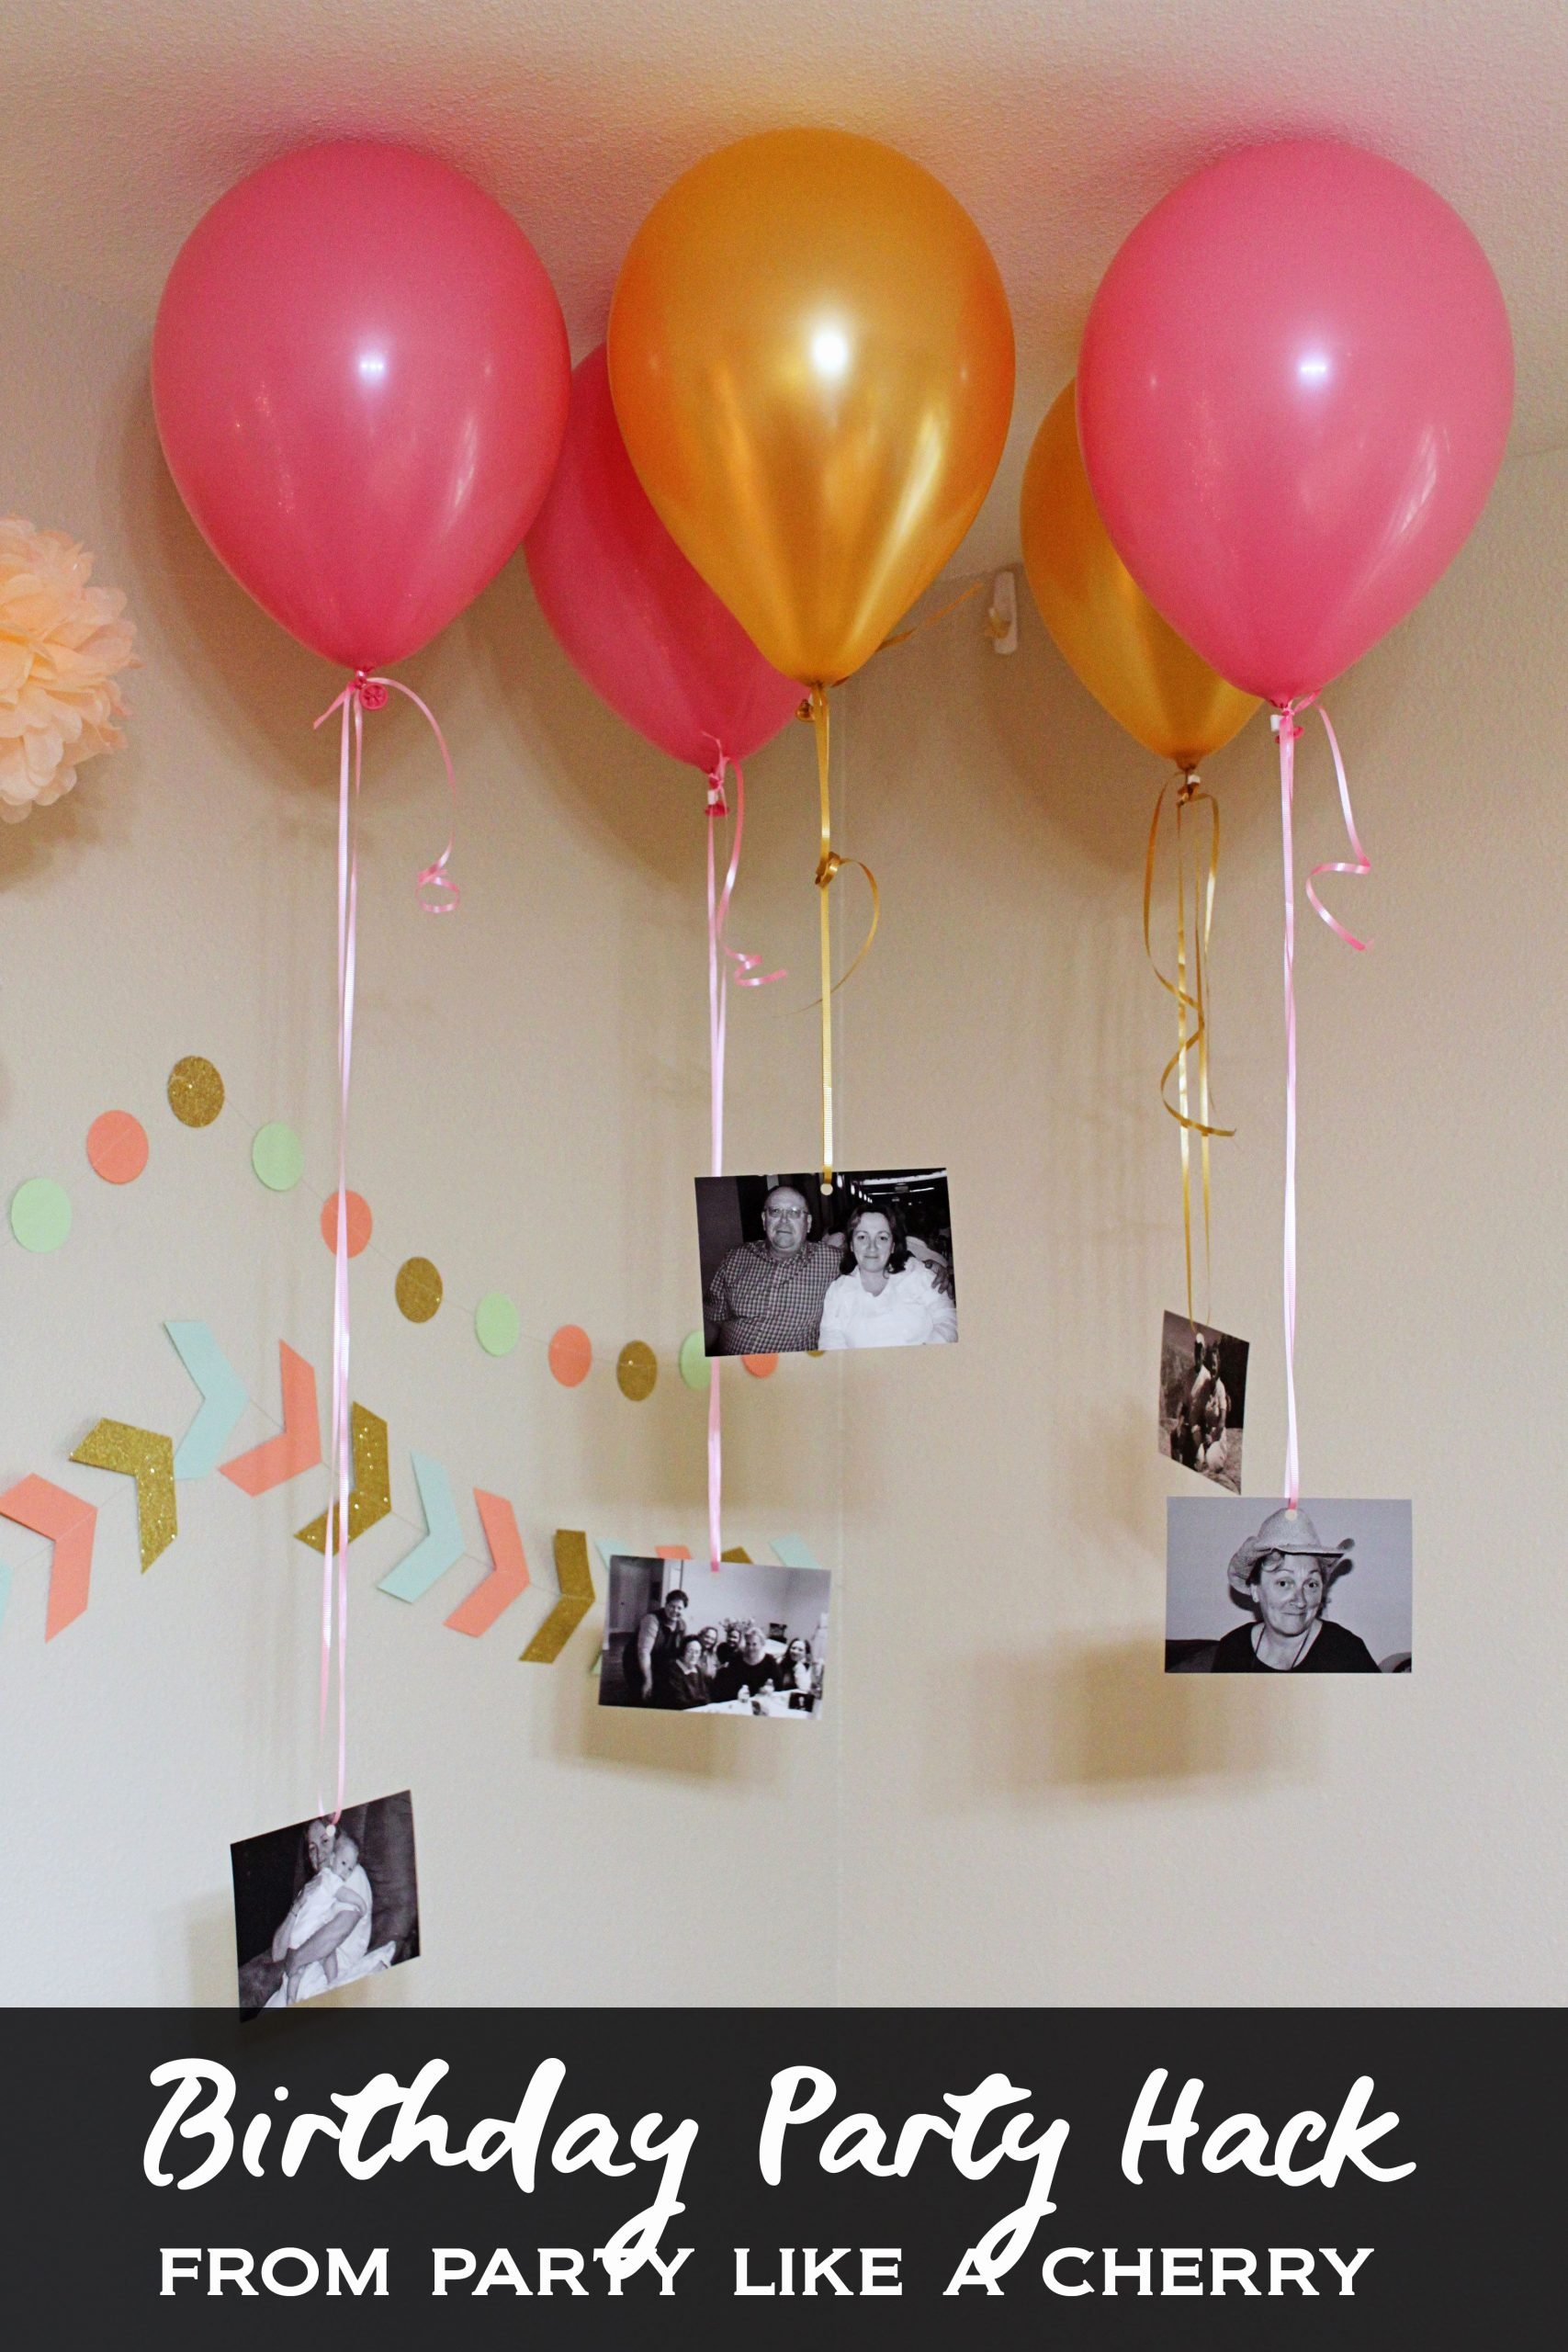 Simple Birthday Decoration Ideas for Adults Lovely 60th Birthday Party Ideas Party Like A Cherry